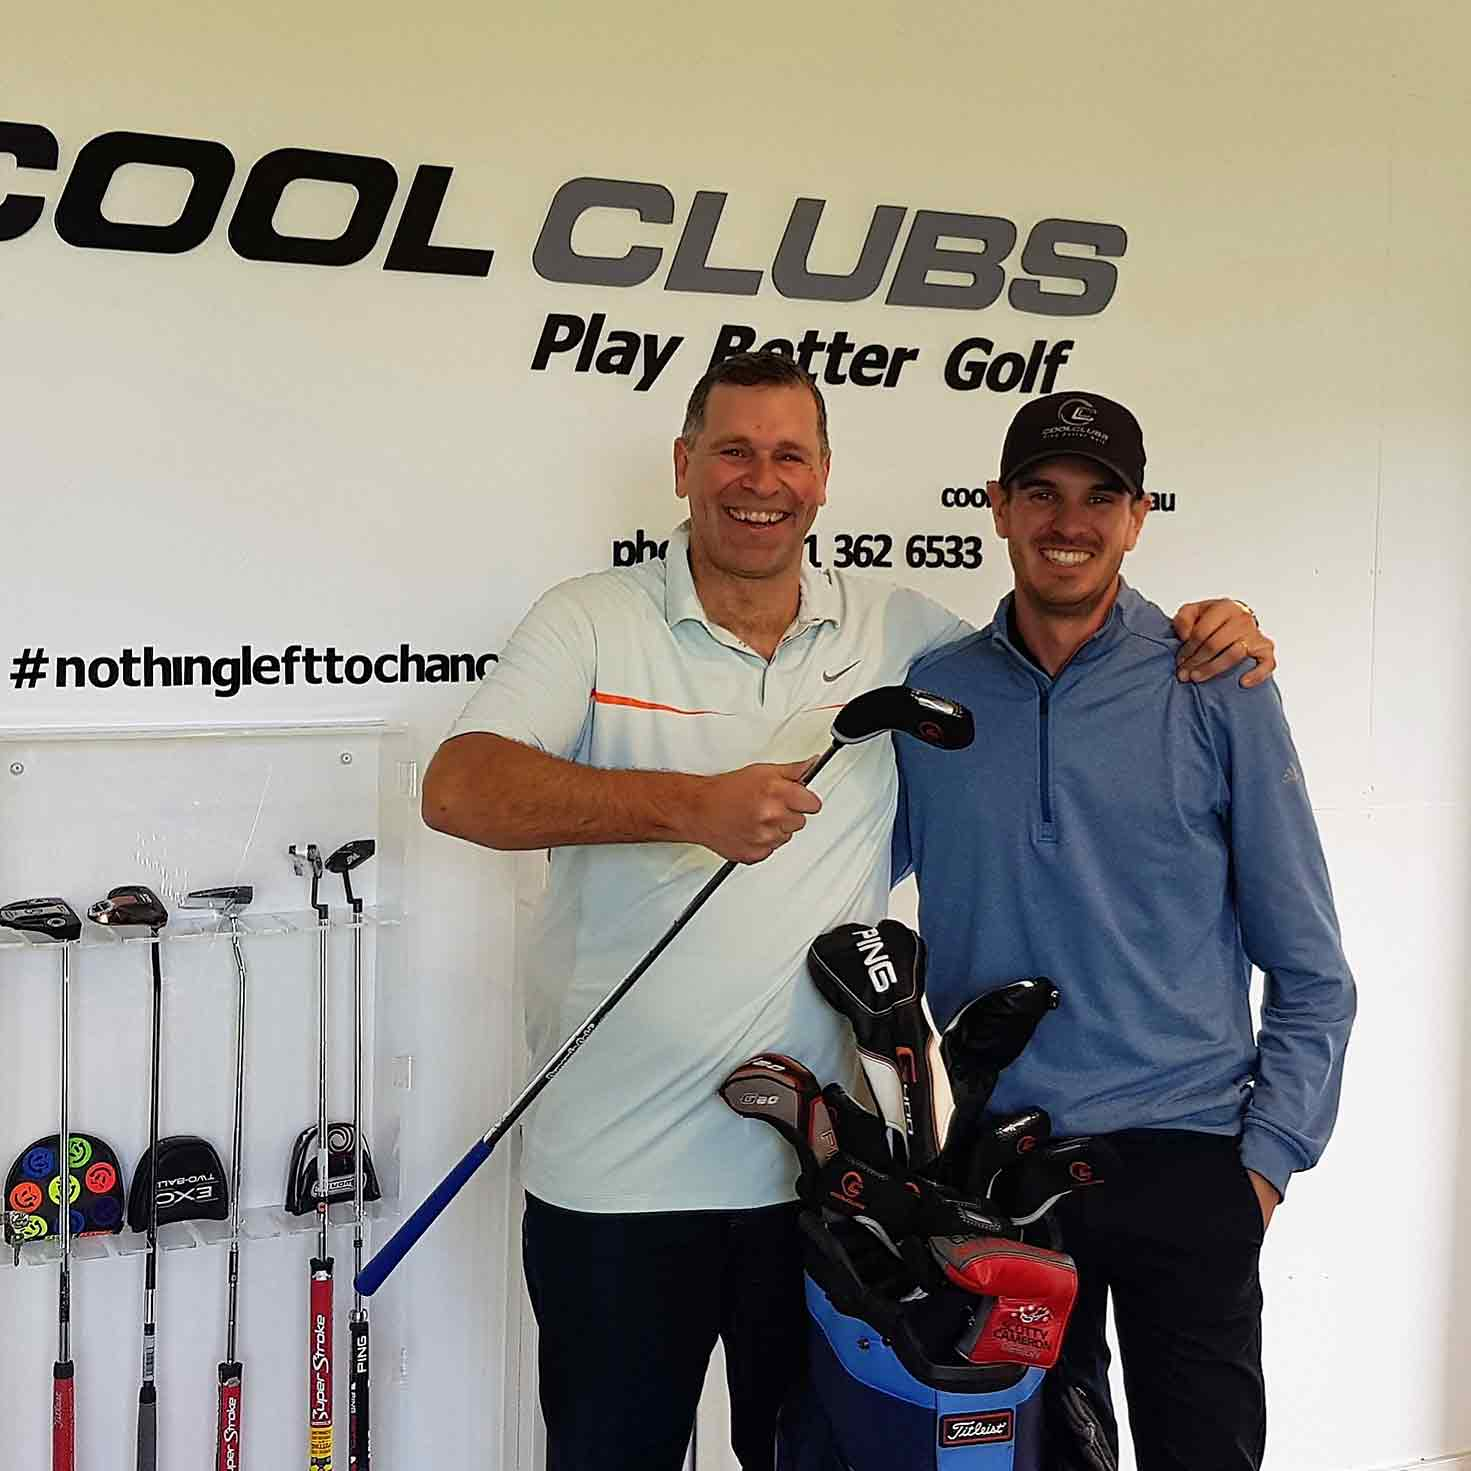 Scott stoked with his new clubs